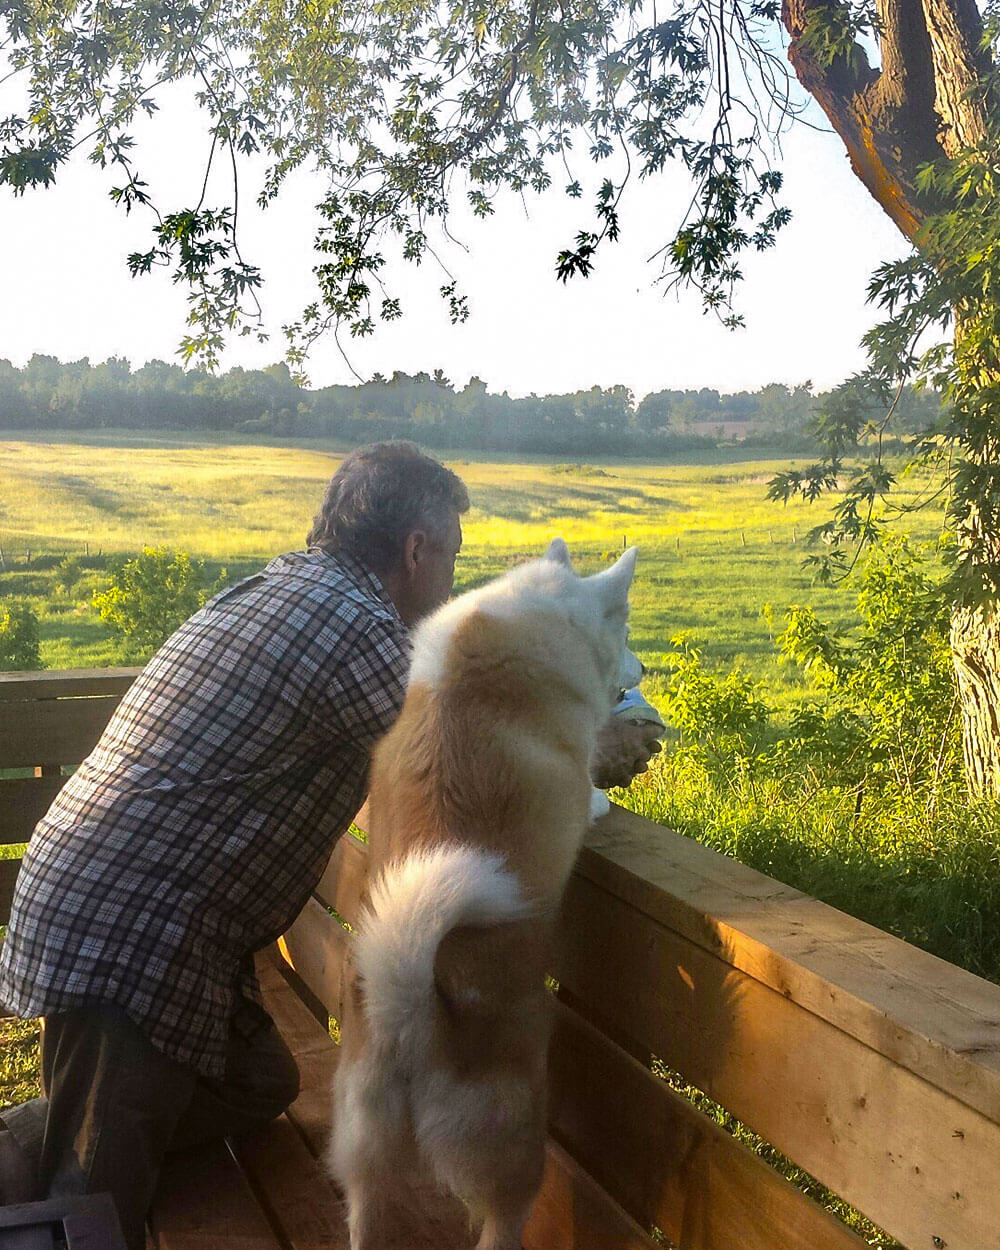 Man and Dog looking out across land